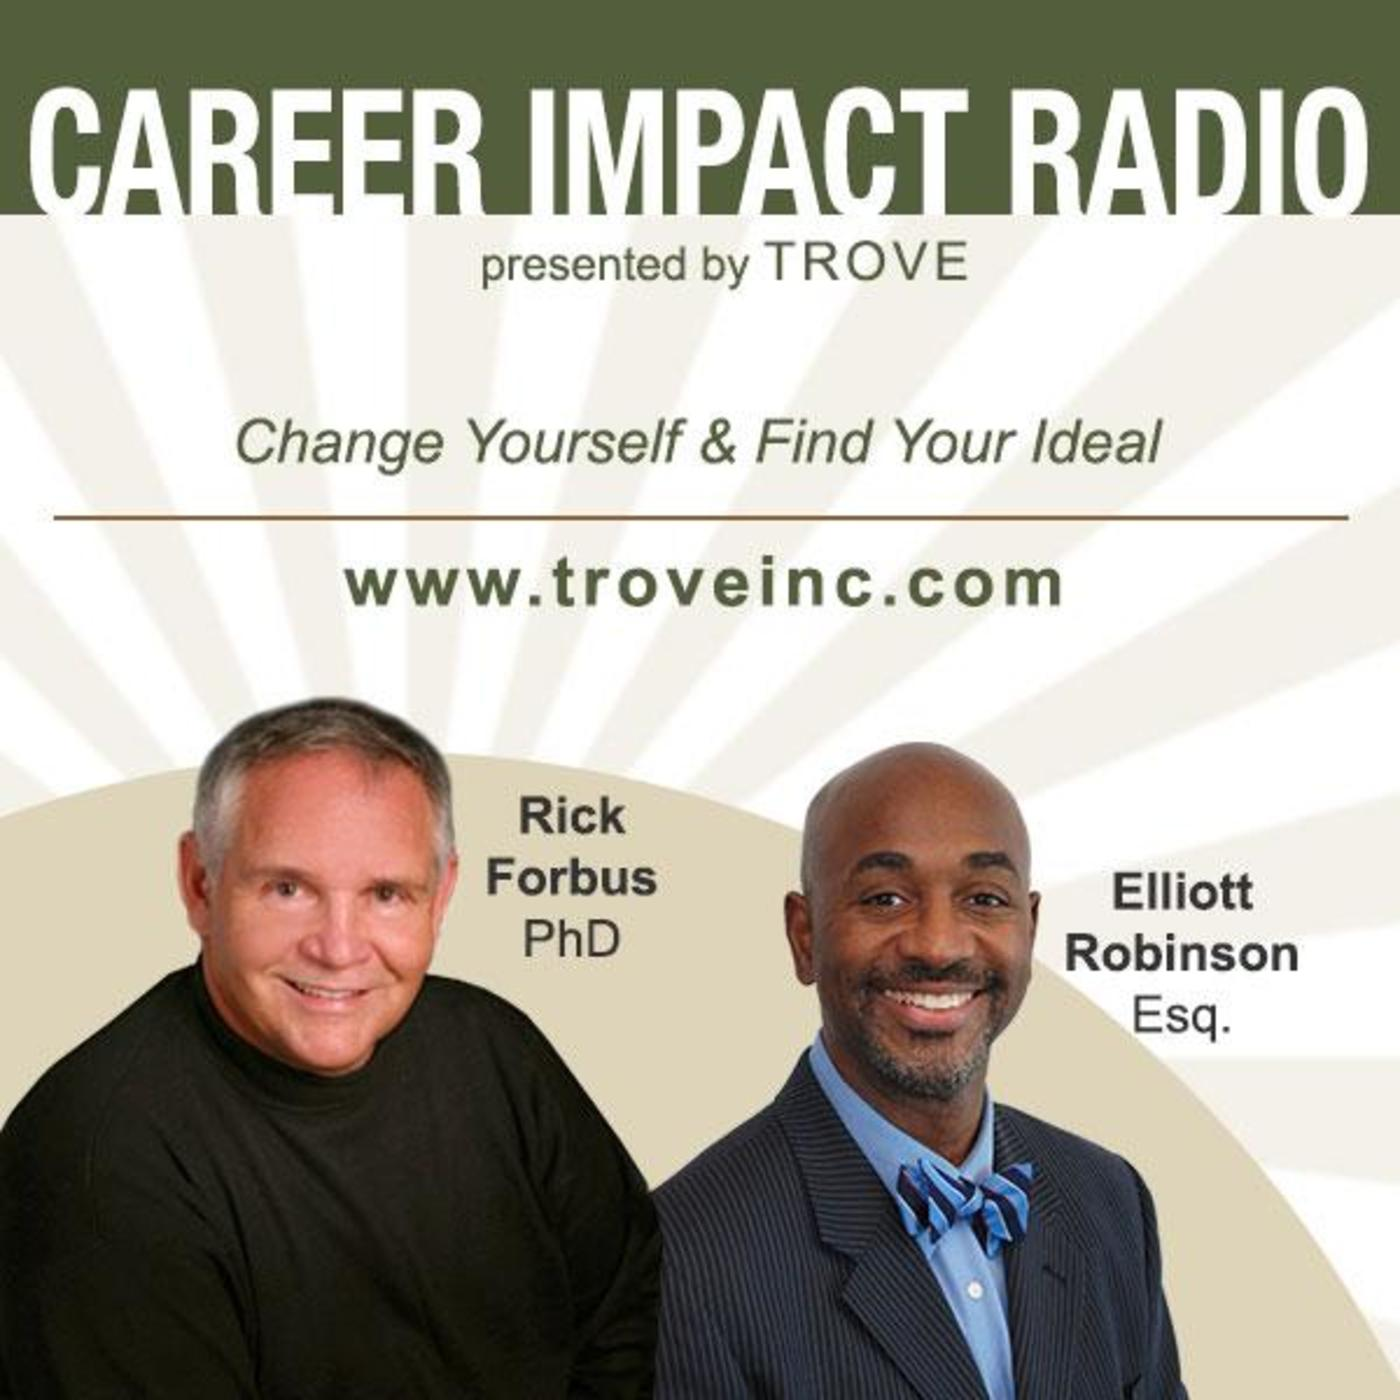 Career Impact Radio by Trove, Inc